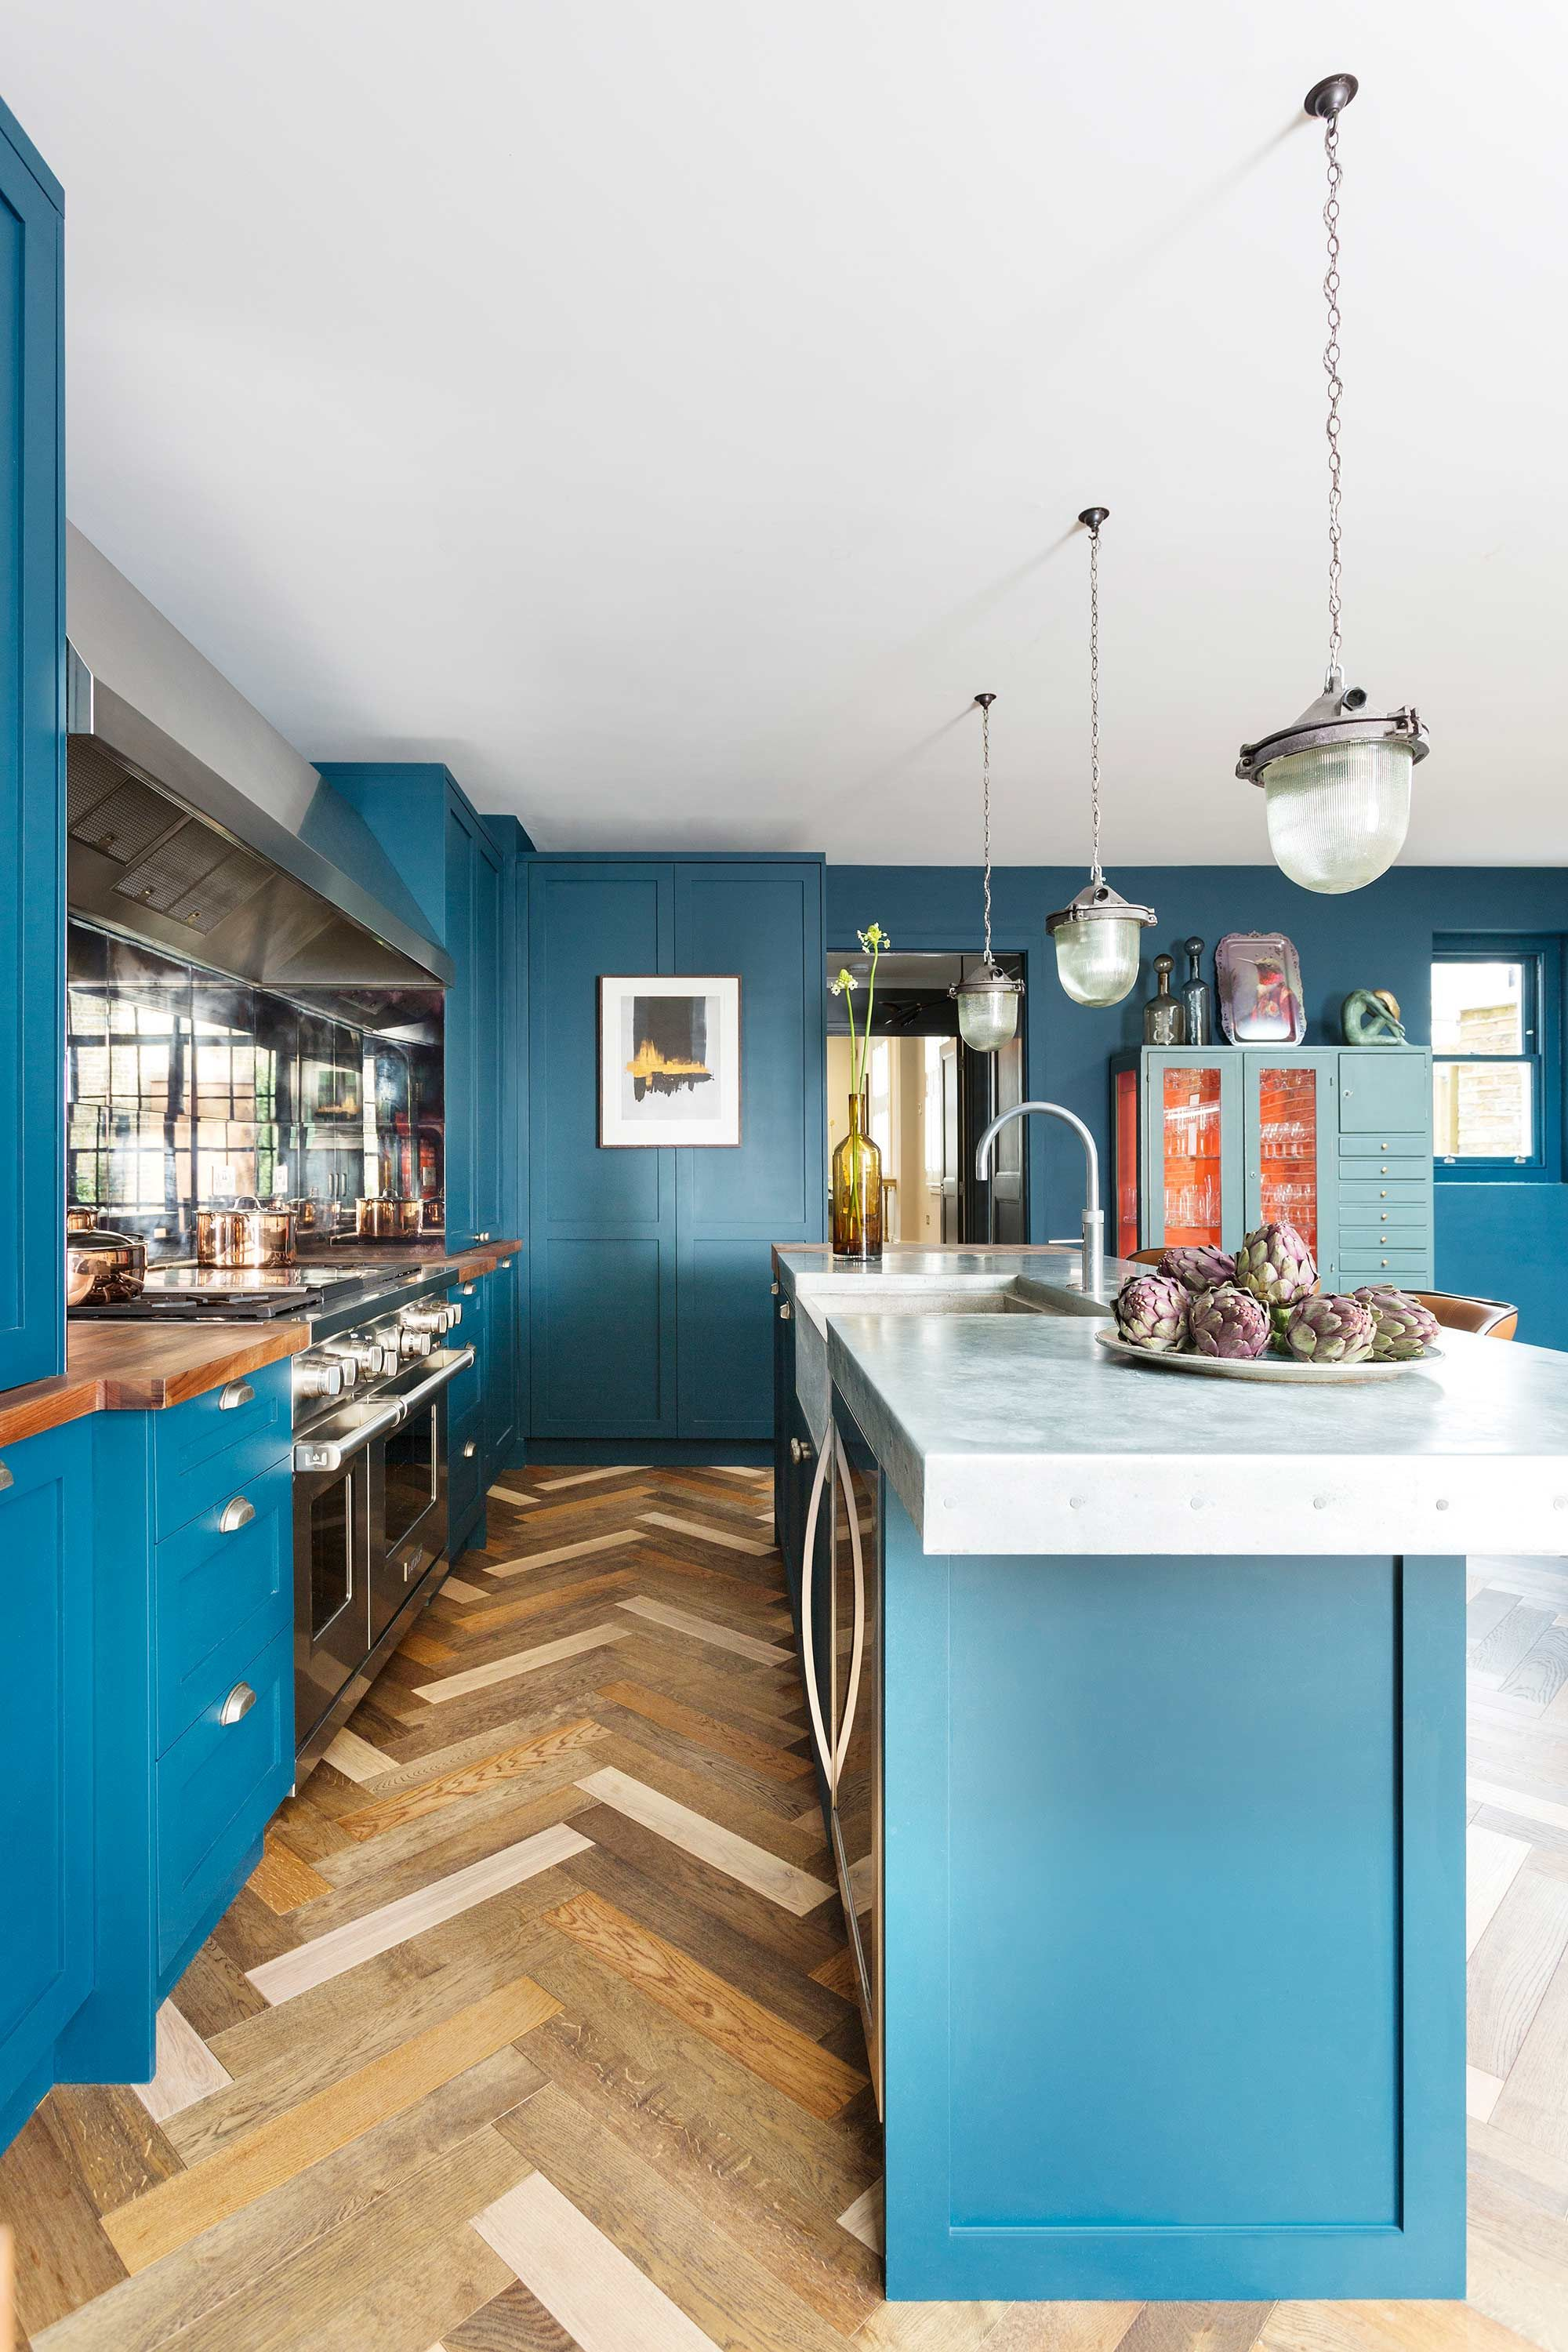 KINGSWOOD ROAD in 2020 | Shaker style kitchens, New